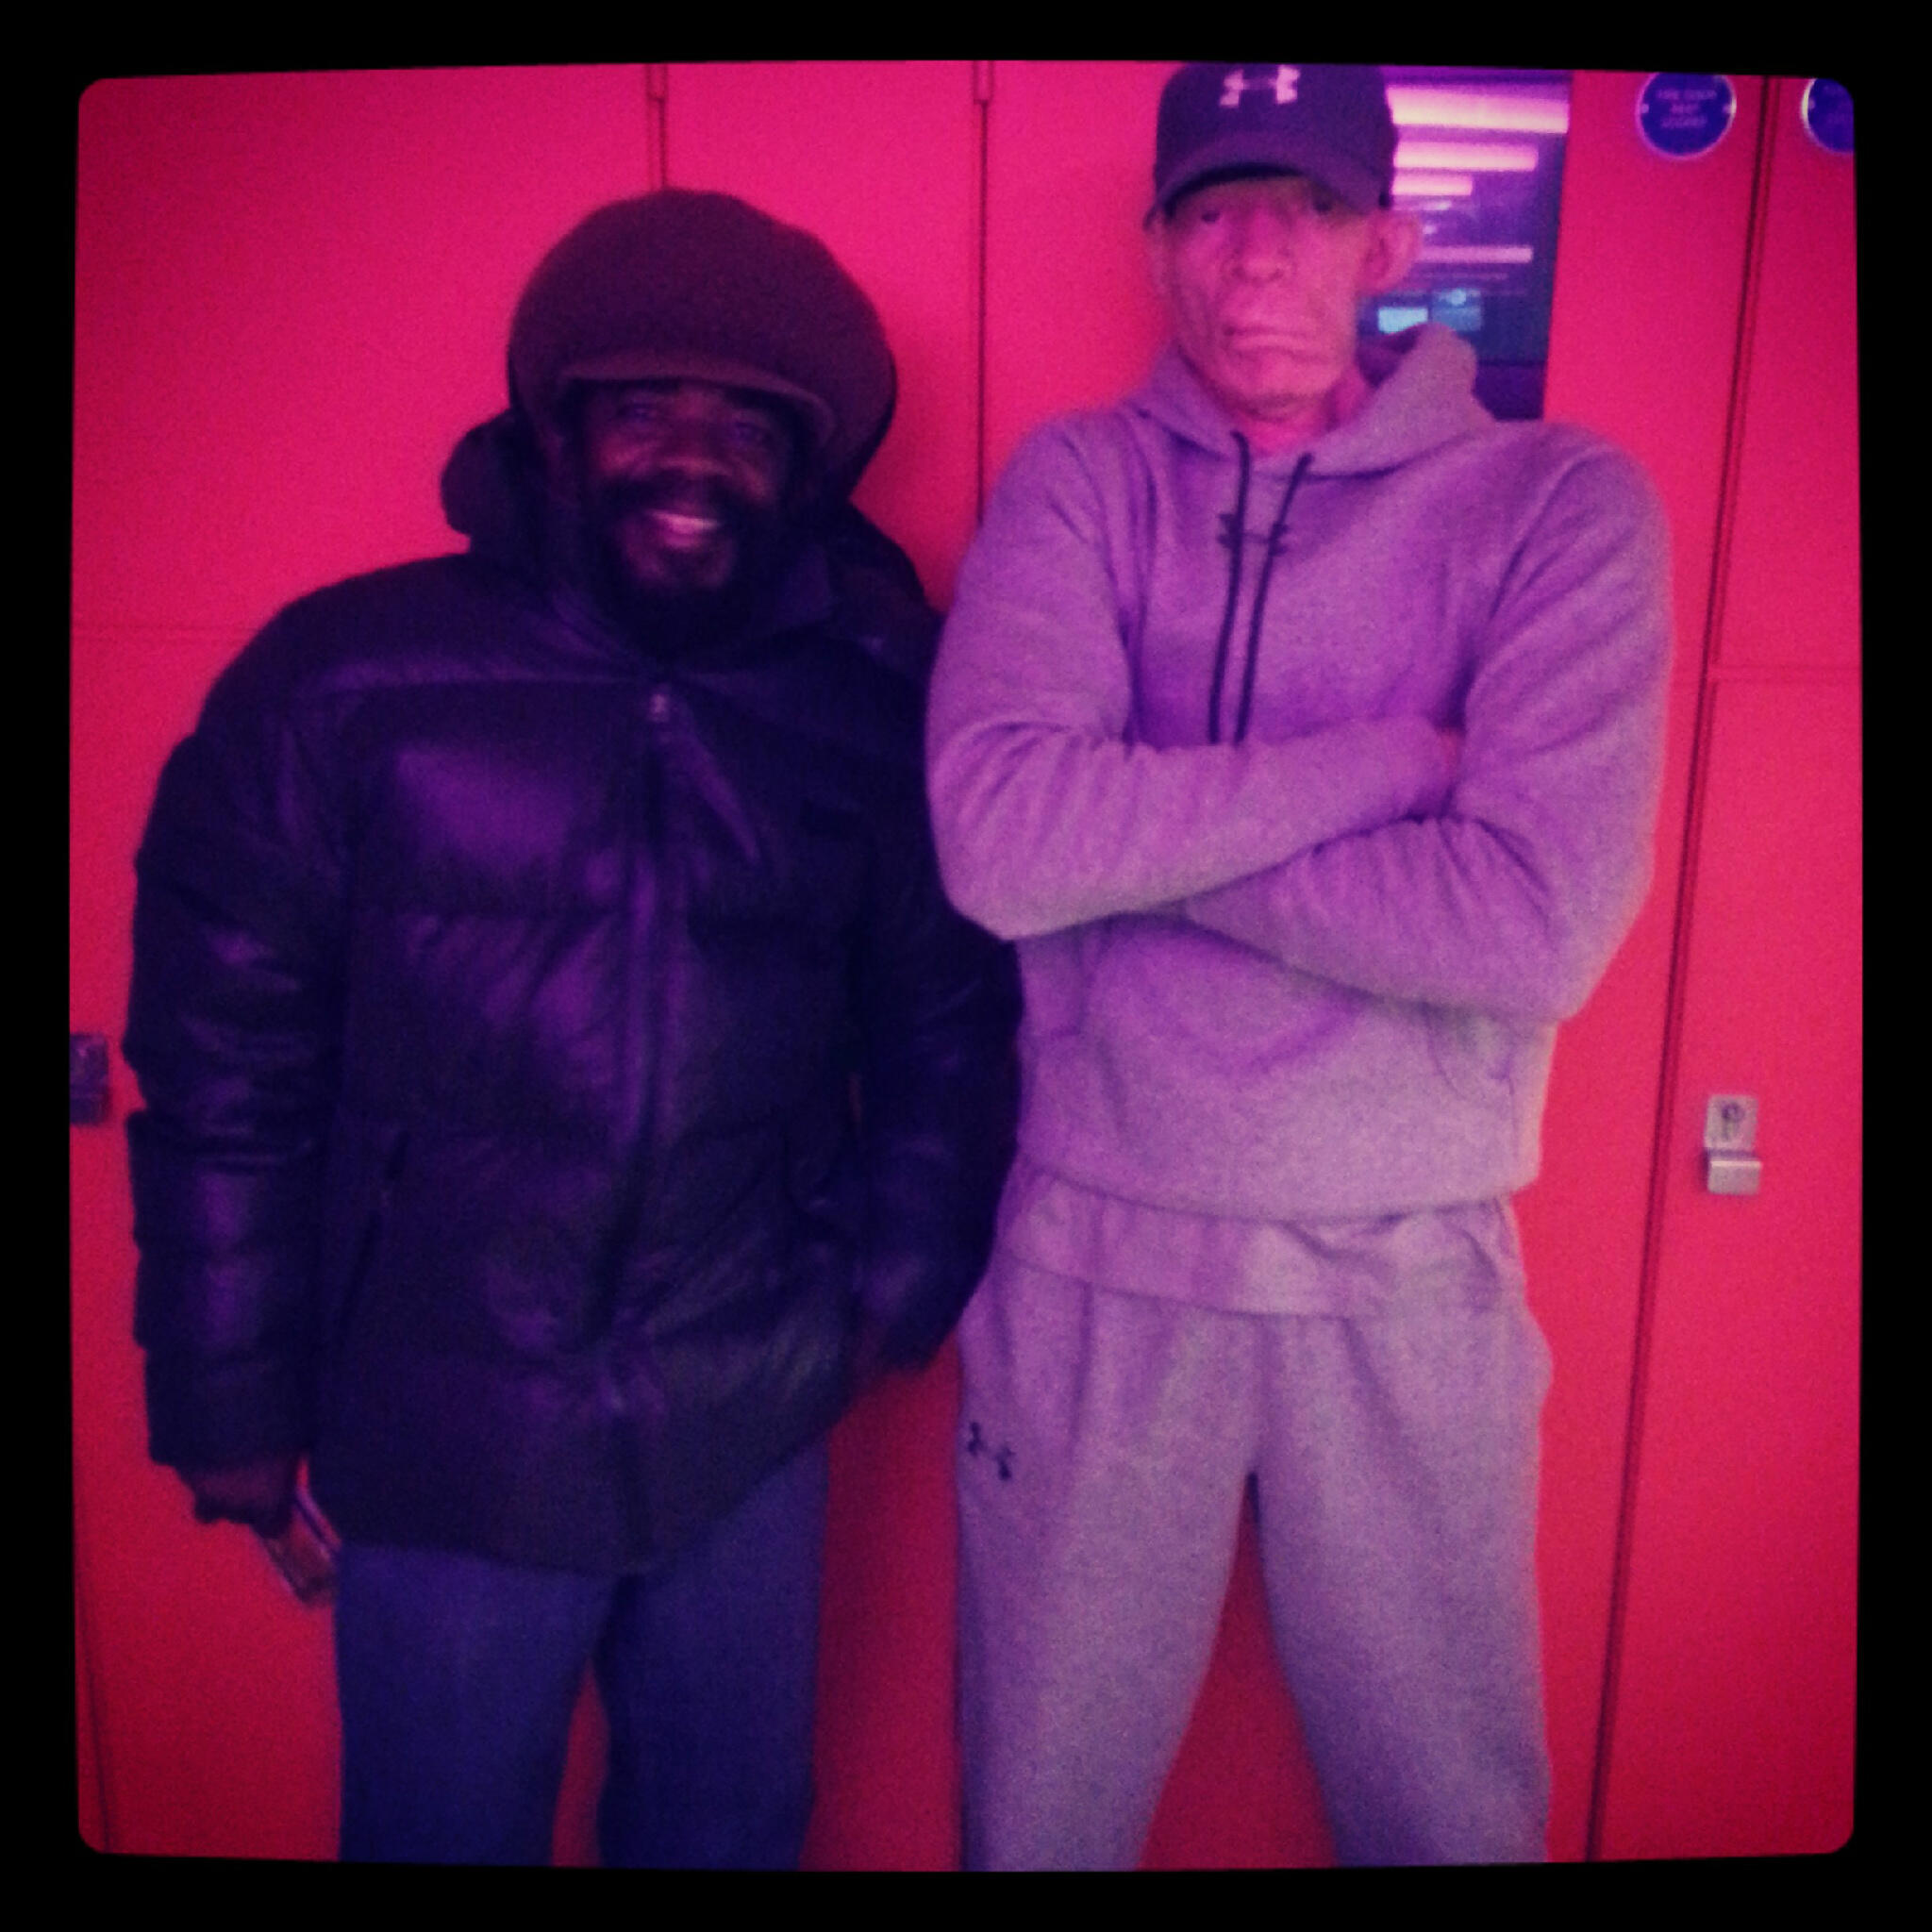 Coming up next on the show @RobboRanx is about to be joined by Reggae royalty Yellowman and Cocoa T. Keep it locked! http://t.co/nymplhCXvO